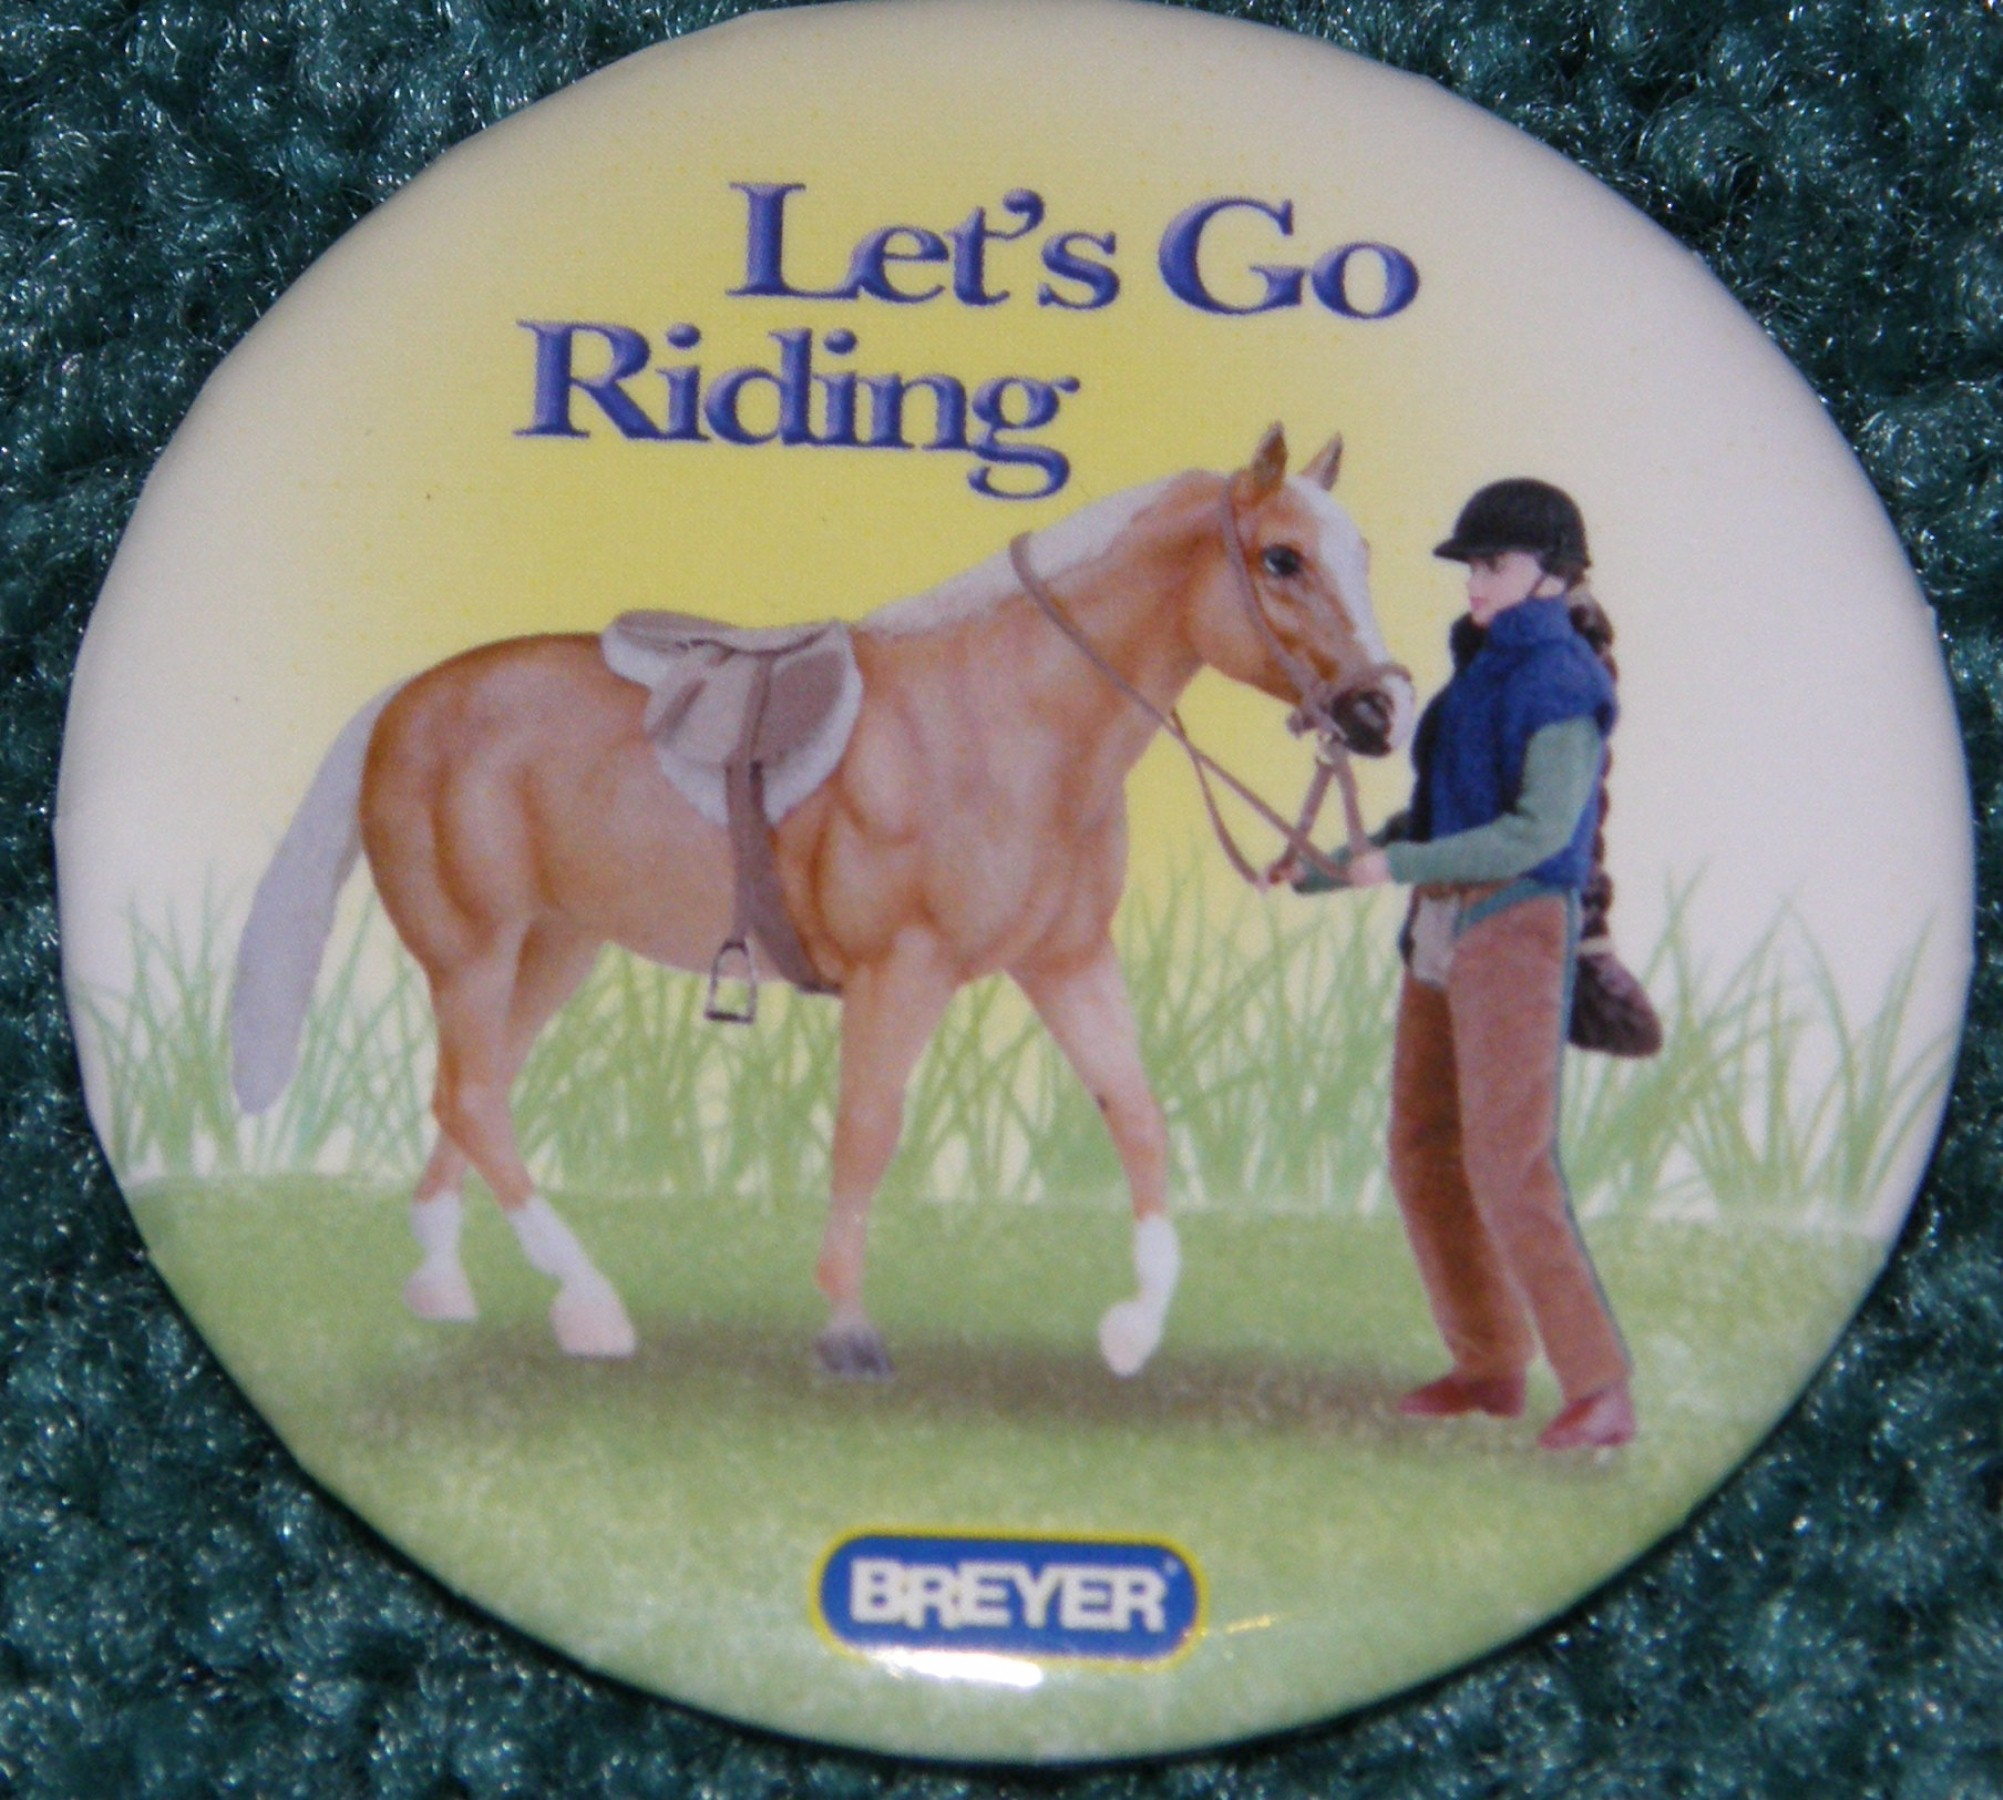 #1265 Let's Go Riding English Breyer Horse Button Pin